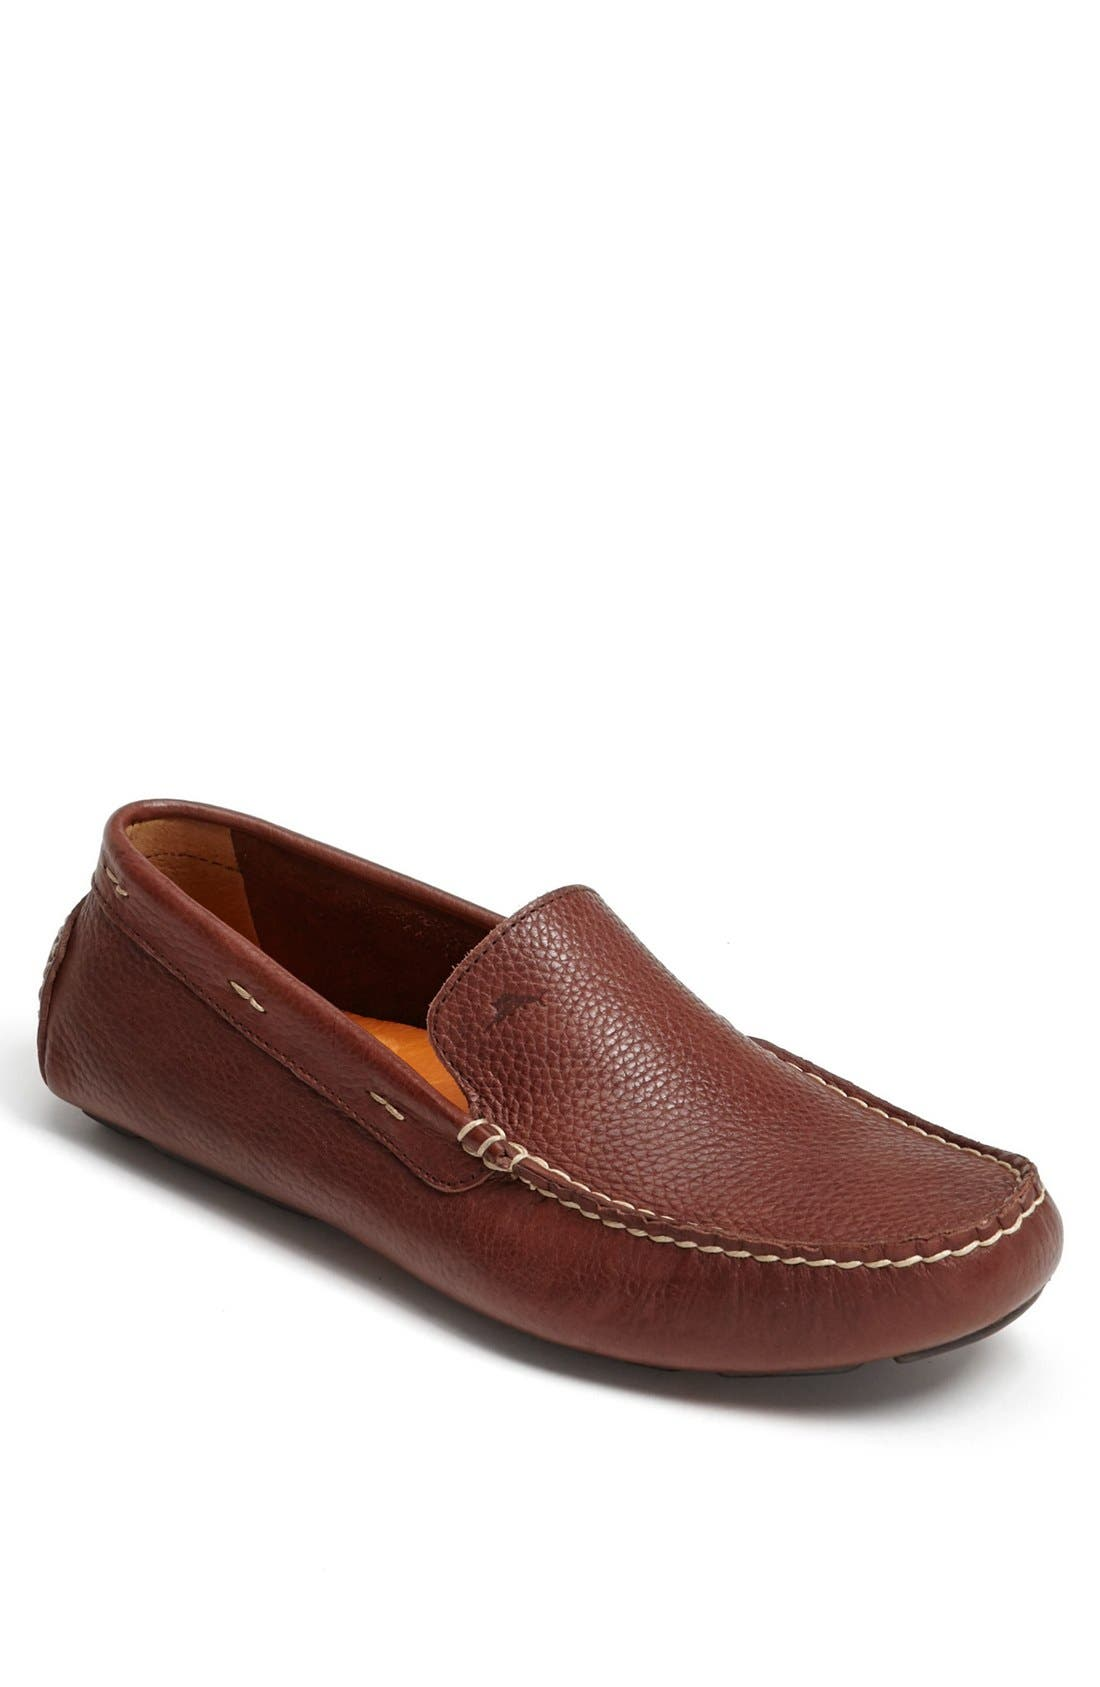 Alternate Image 1 Selected - Tommy Bahama 'Pagota' Driving Shoe